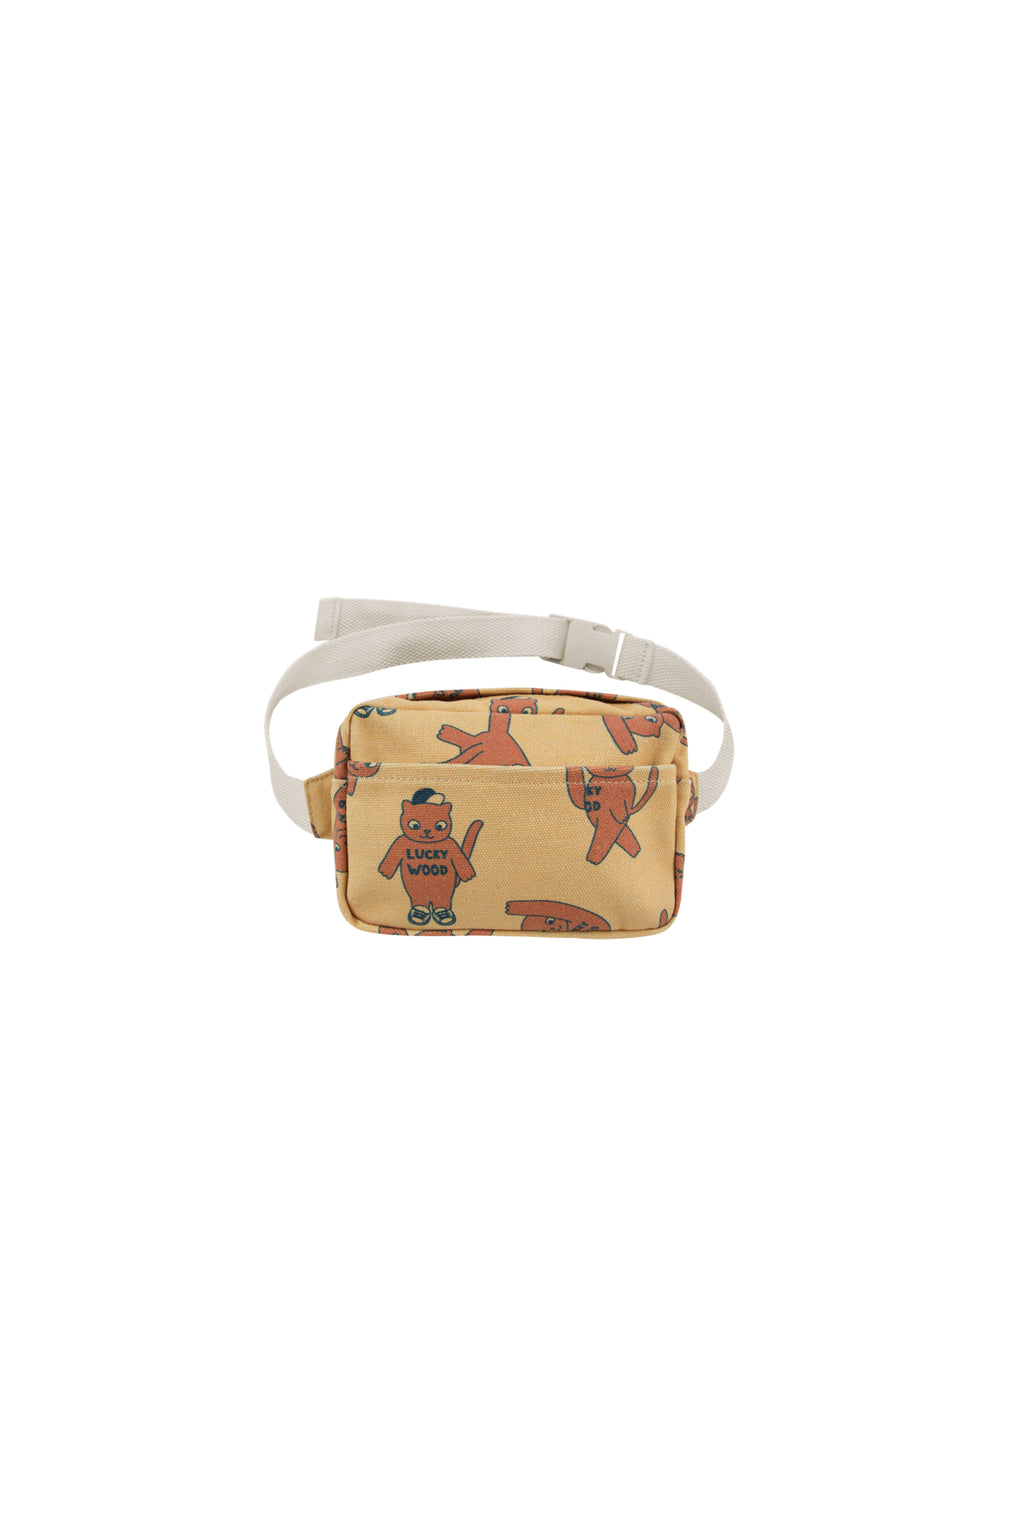 "Tiny Cottons ""Cats"" Fanny Bag - Sand/Brown"